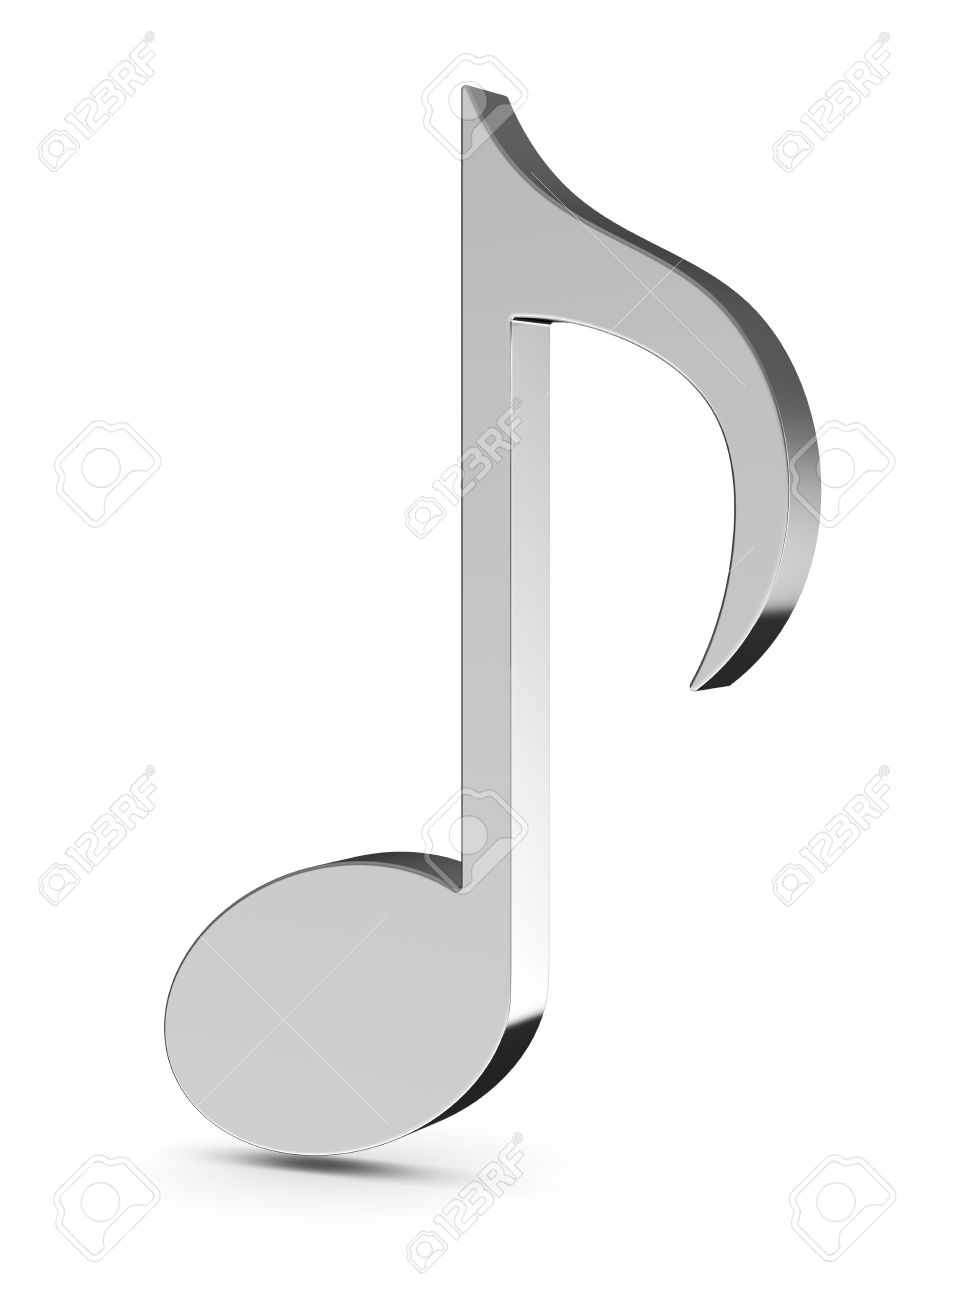 3d render of music note isolated on white background Stock Photo - 13911305